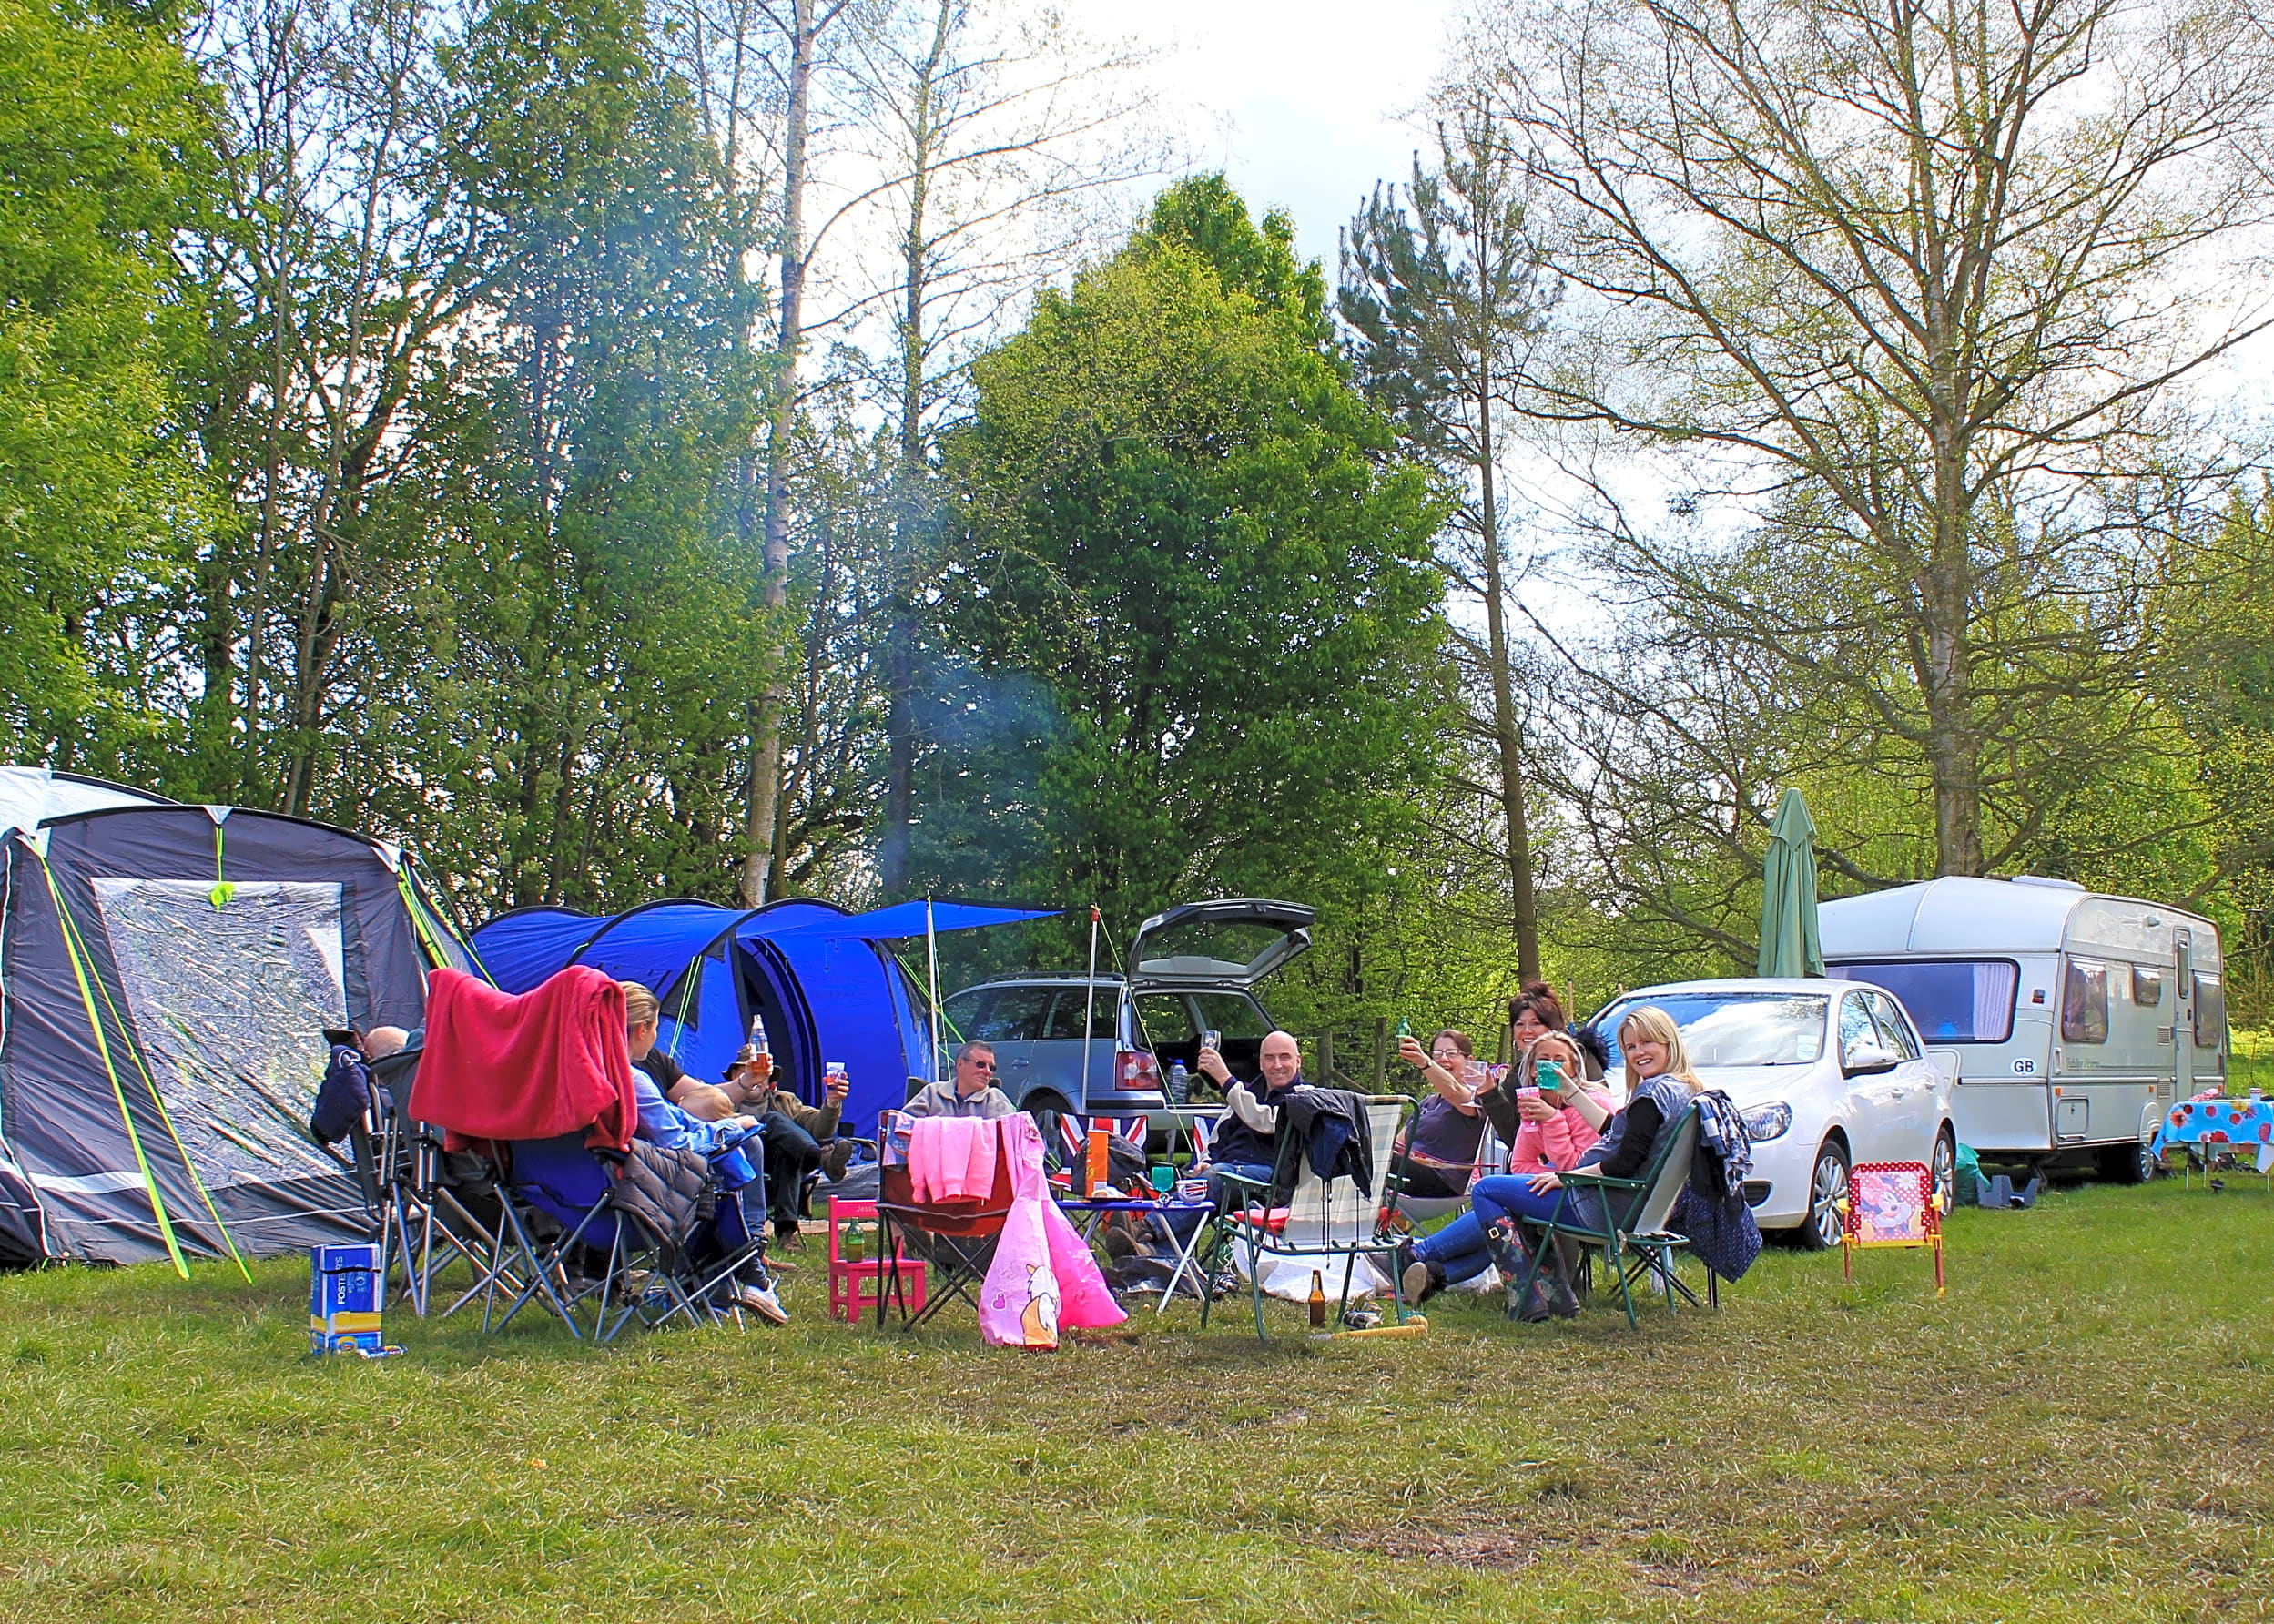 Lazonby campsite penrith updated 2019 prices pitchup - Campsites in cumbria with swimming pool ...